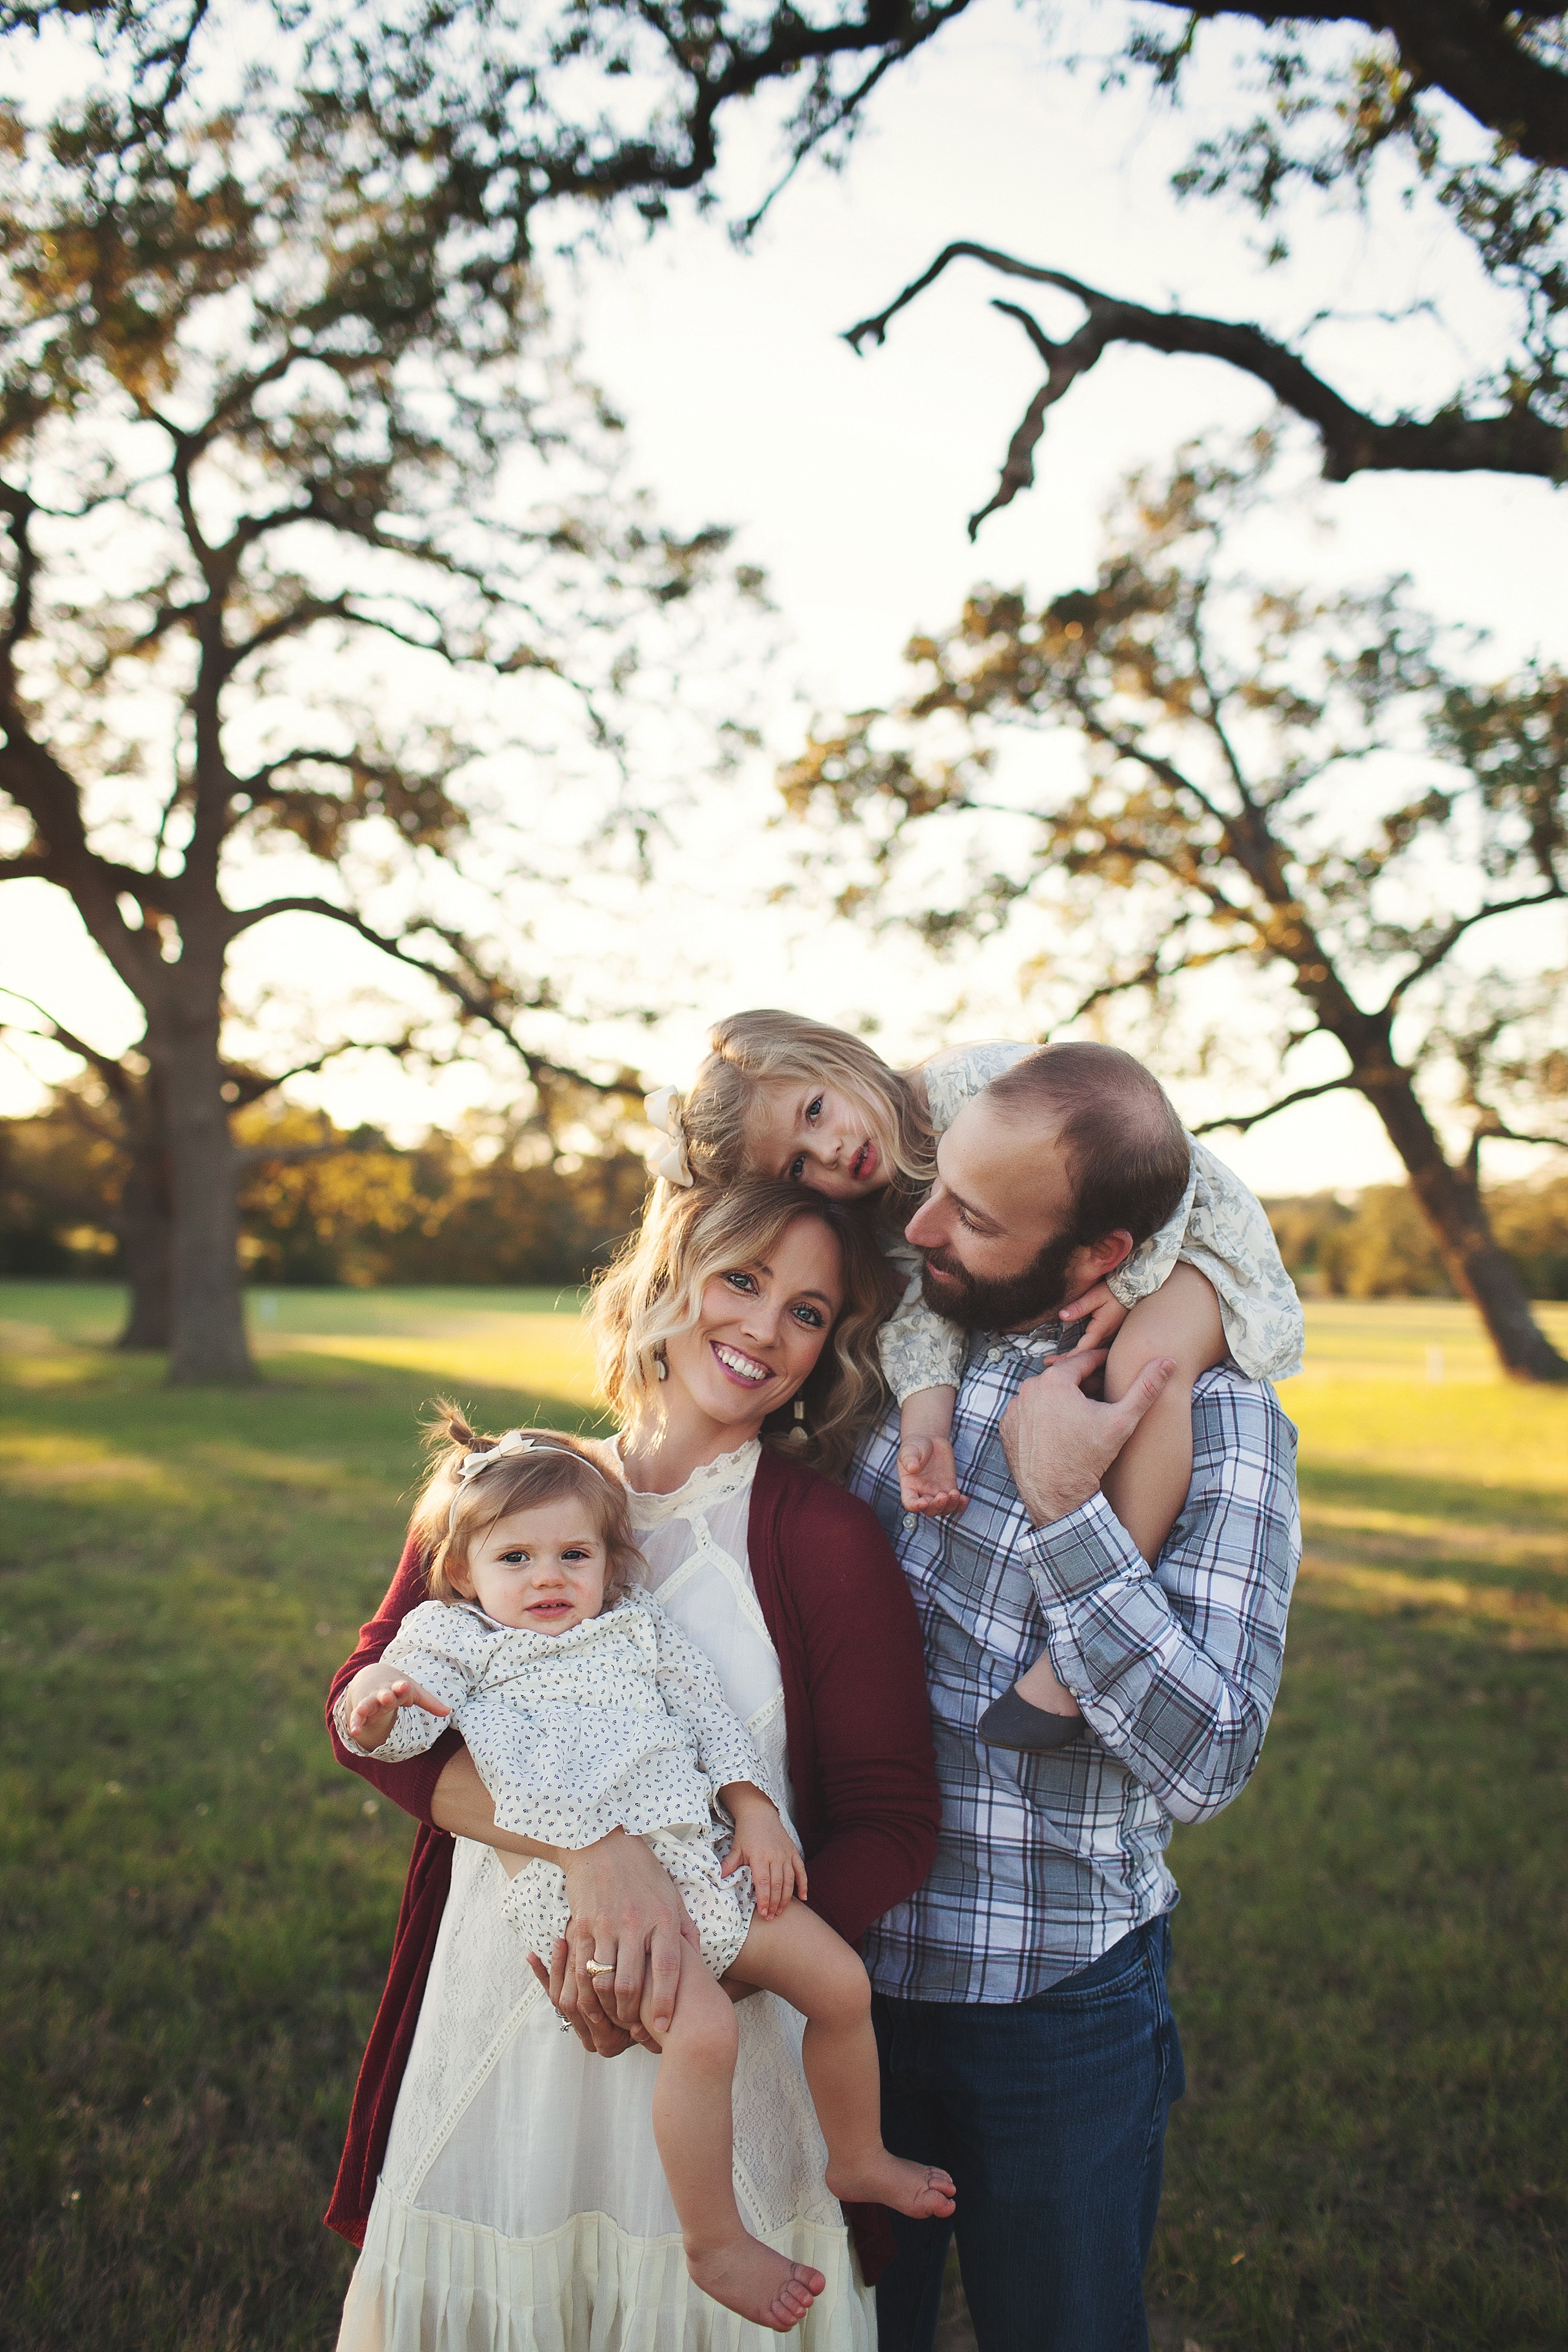 College Station Family Photographer | Rosalyn Ash Photography | www.rosalynash.com